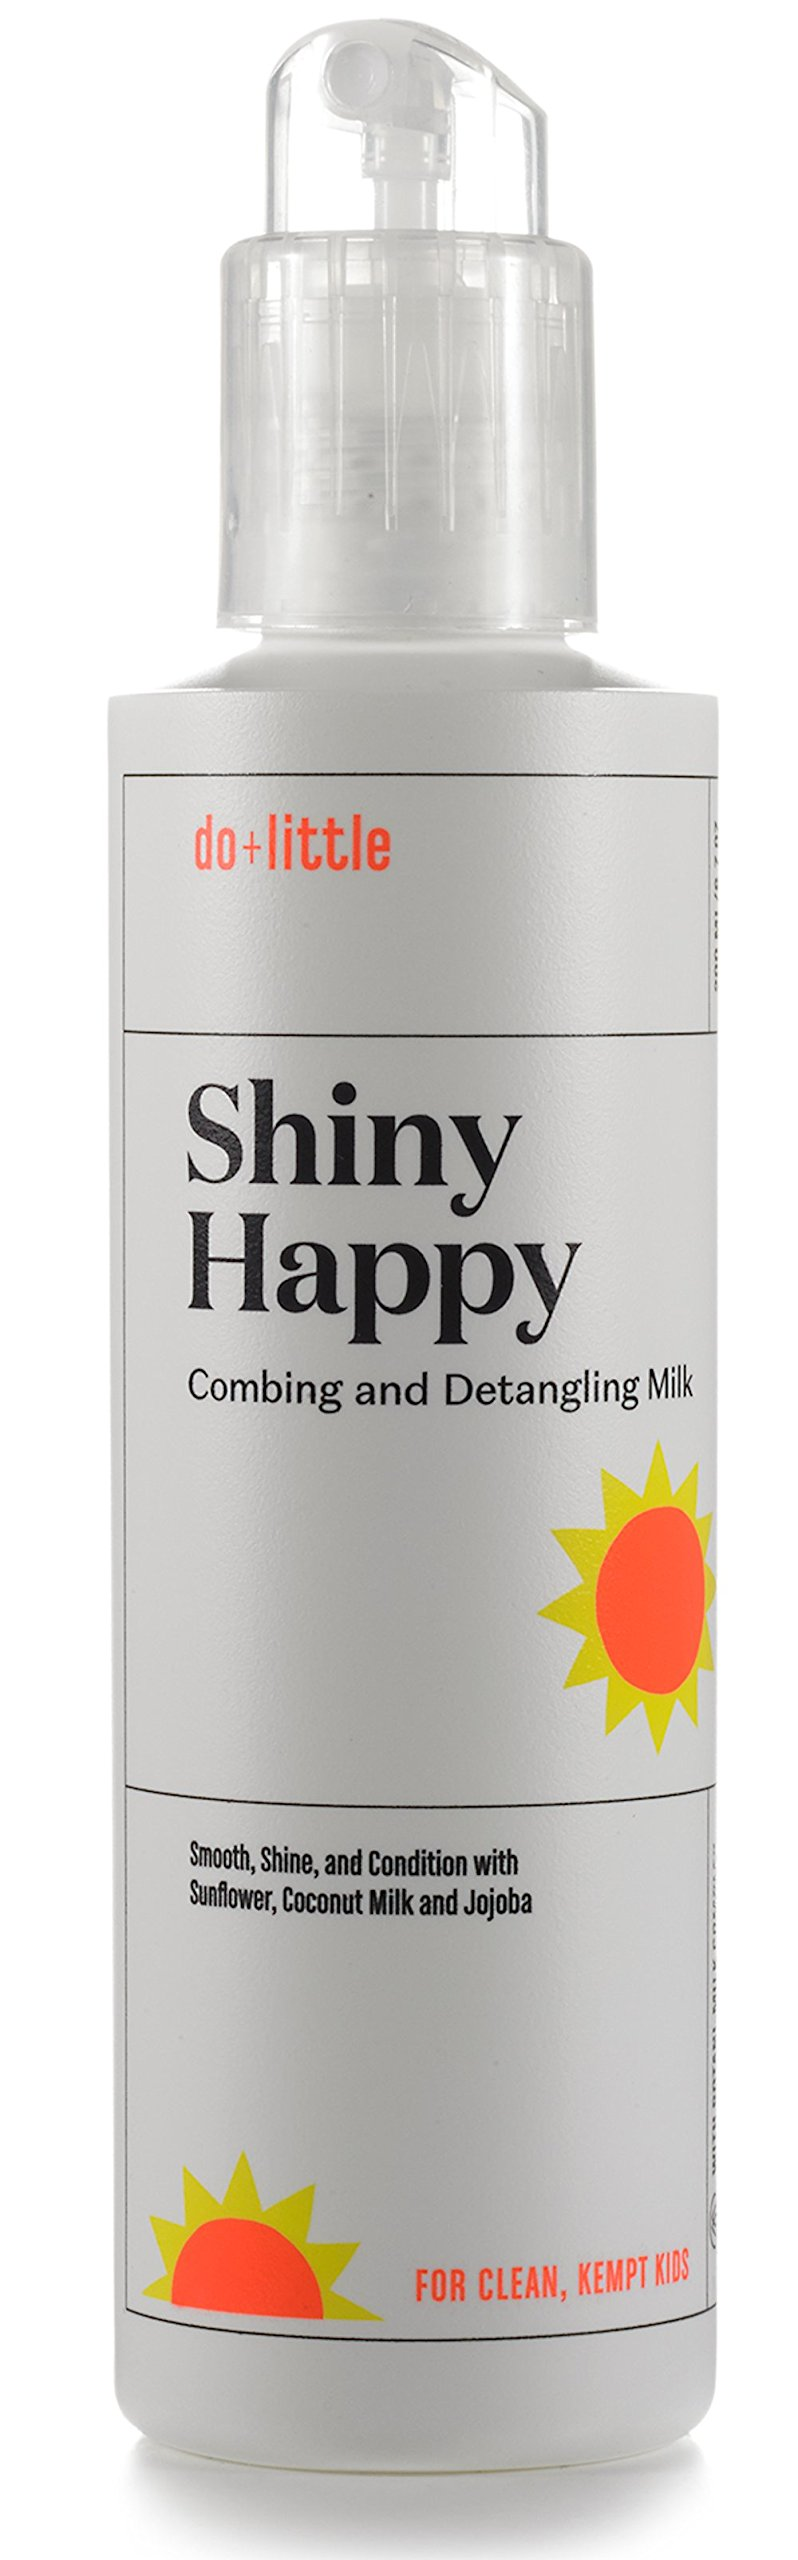 Shiny Happy Kids Hair Detangler Spray Leave in Conditioner without PEGs or Petrochemicals or Artificial Fragrance | Premium Kids Detangling Spray with Natural Plant Milks | Clean Beauty for Kids